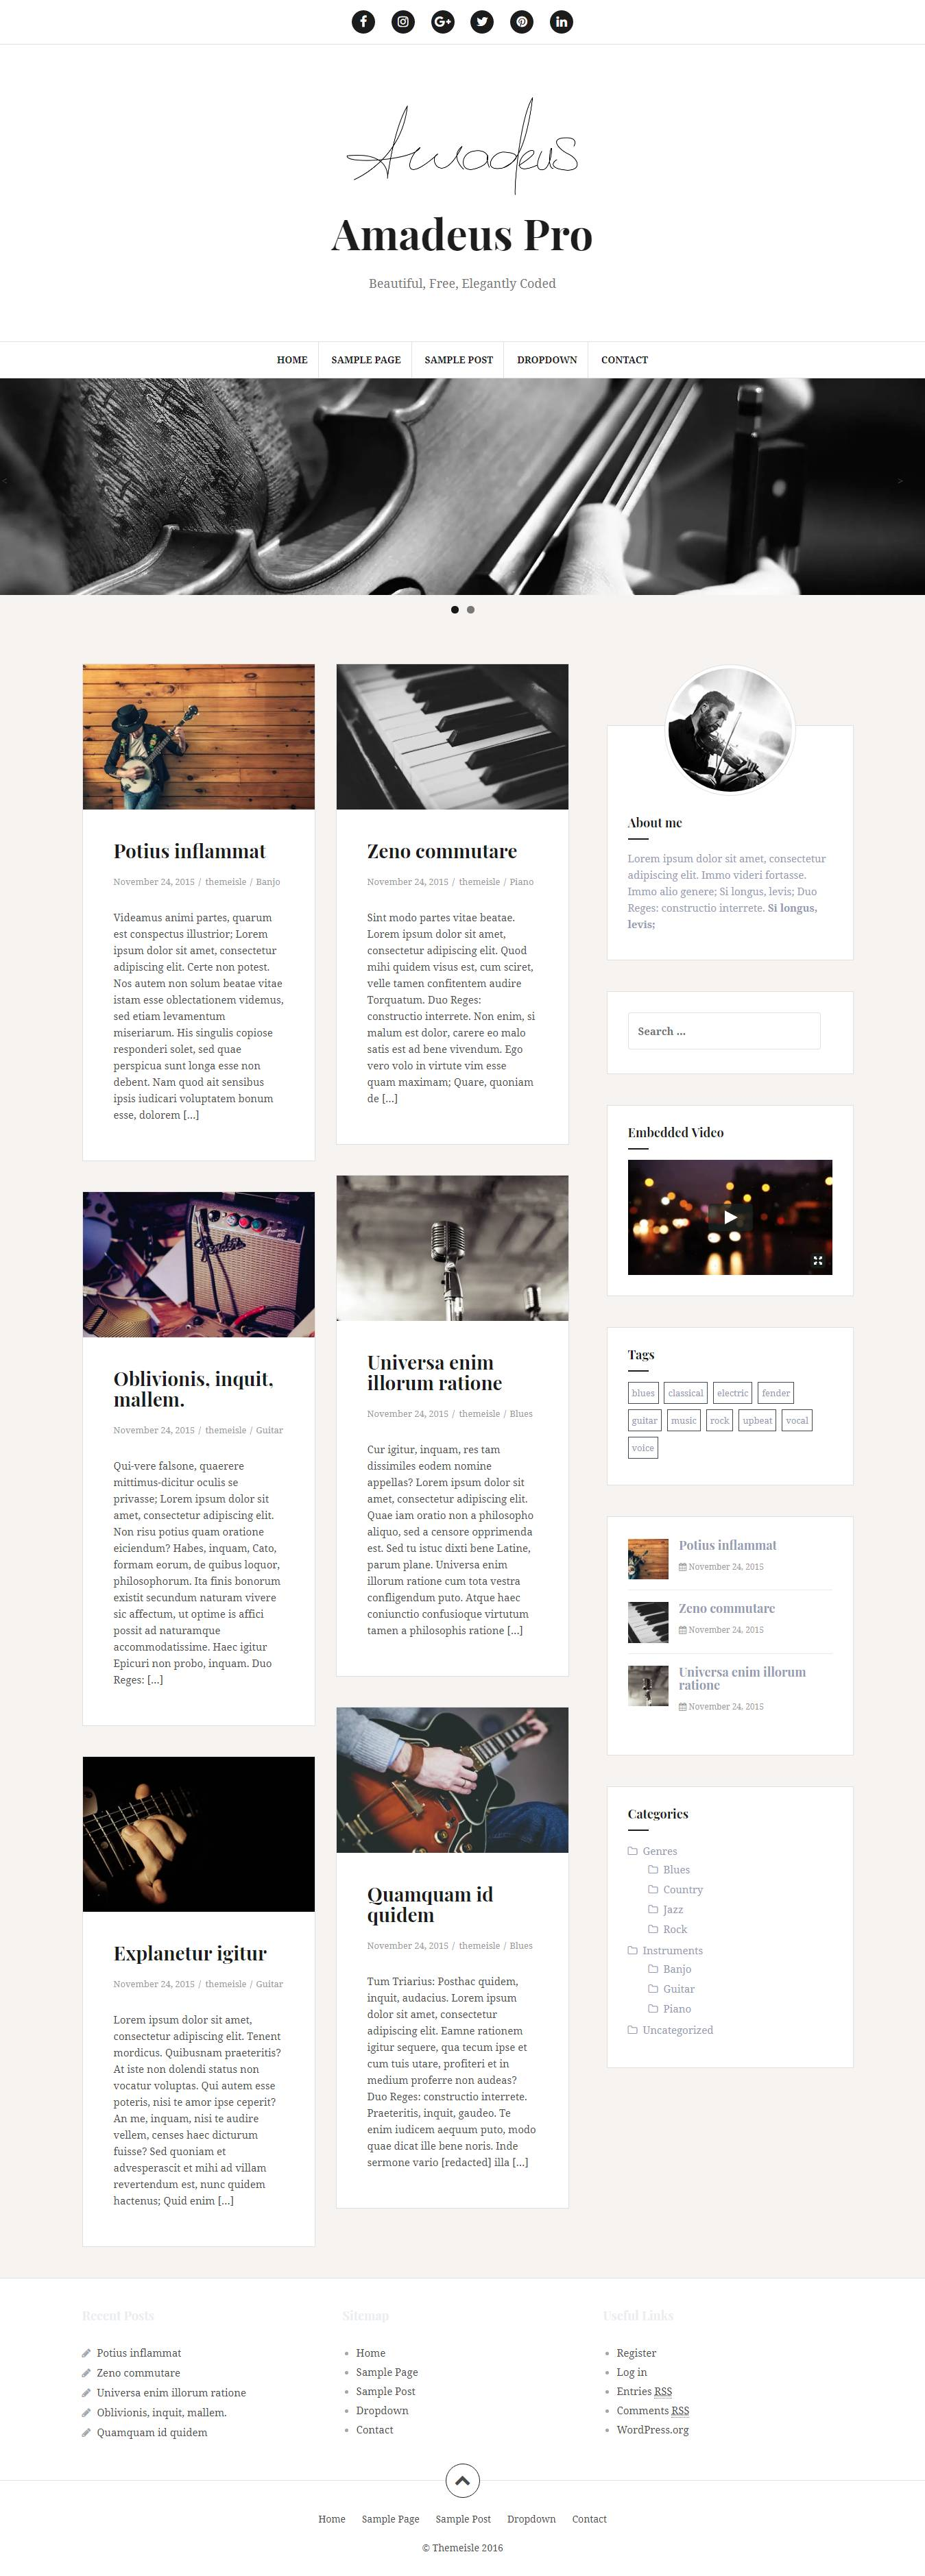 Premium WordPress Blog Templates